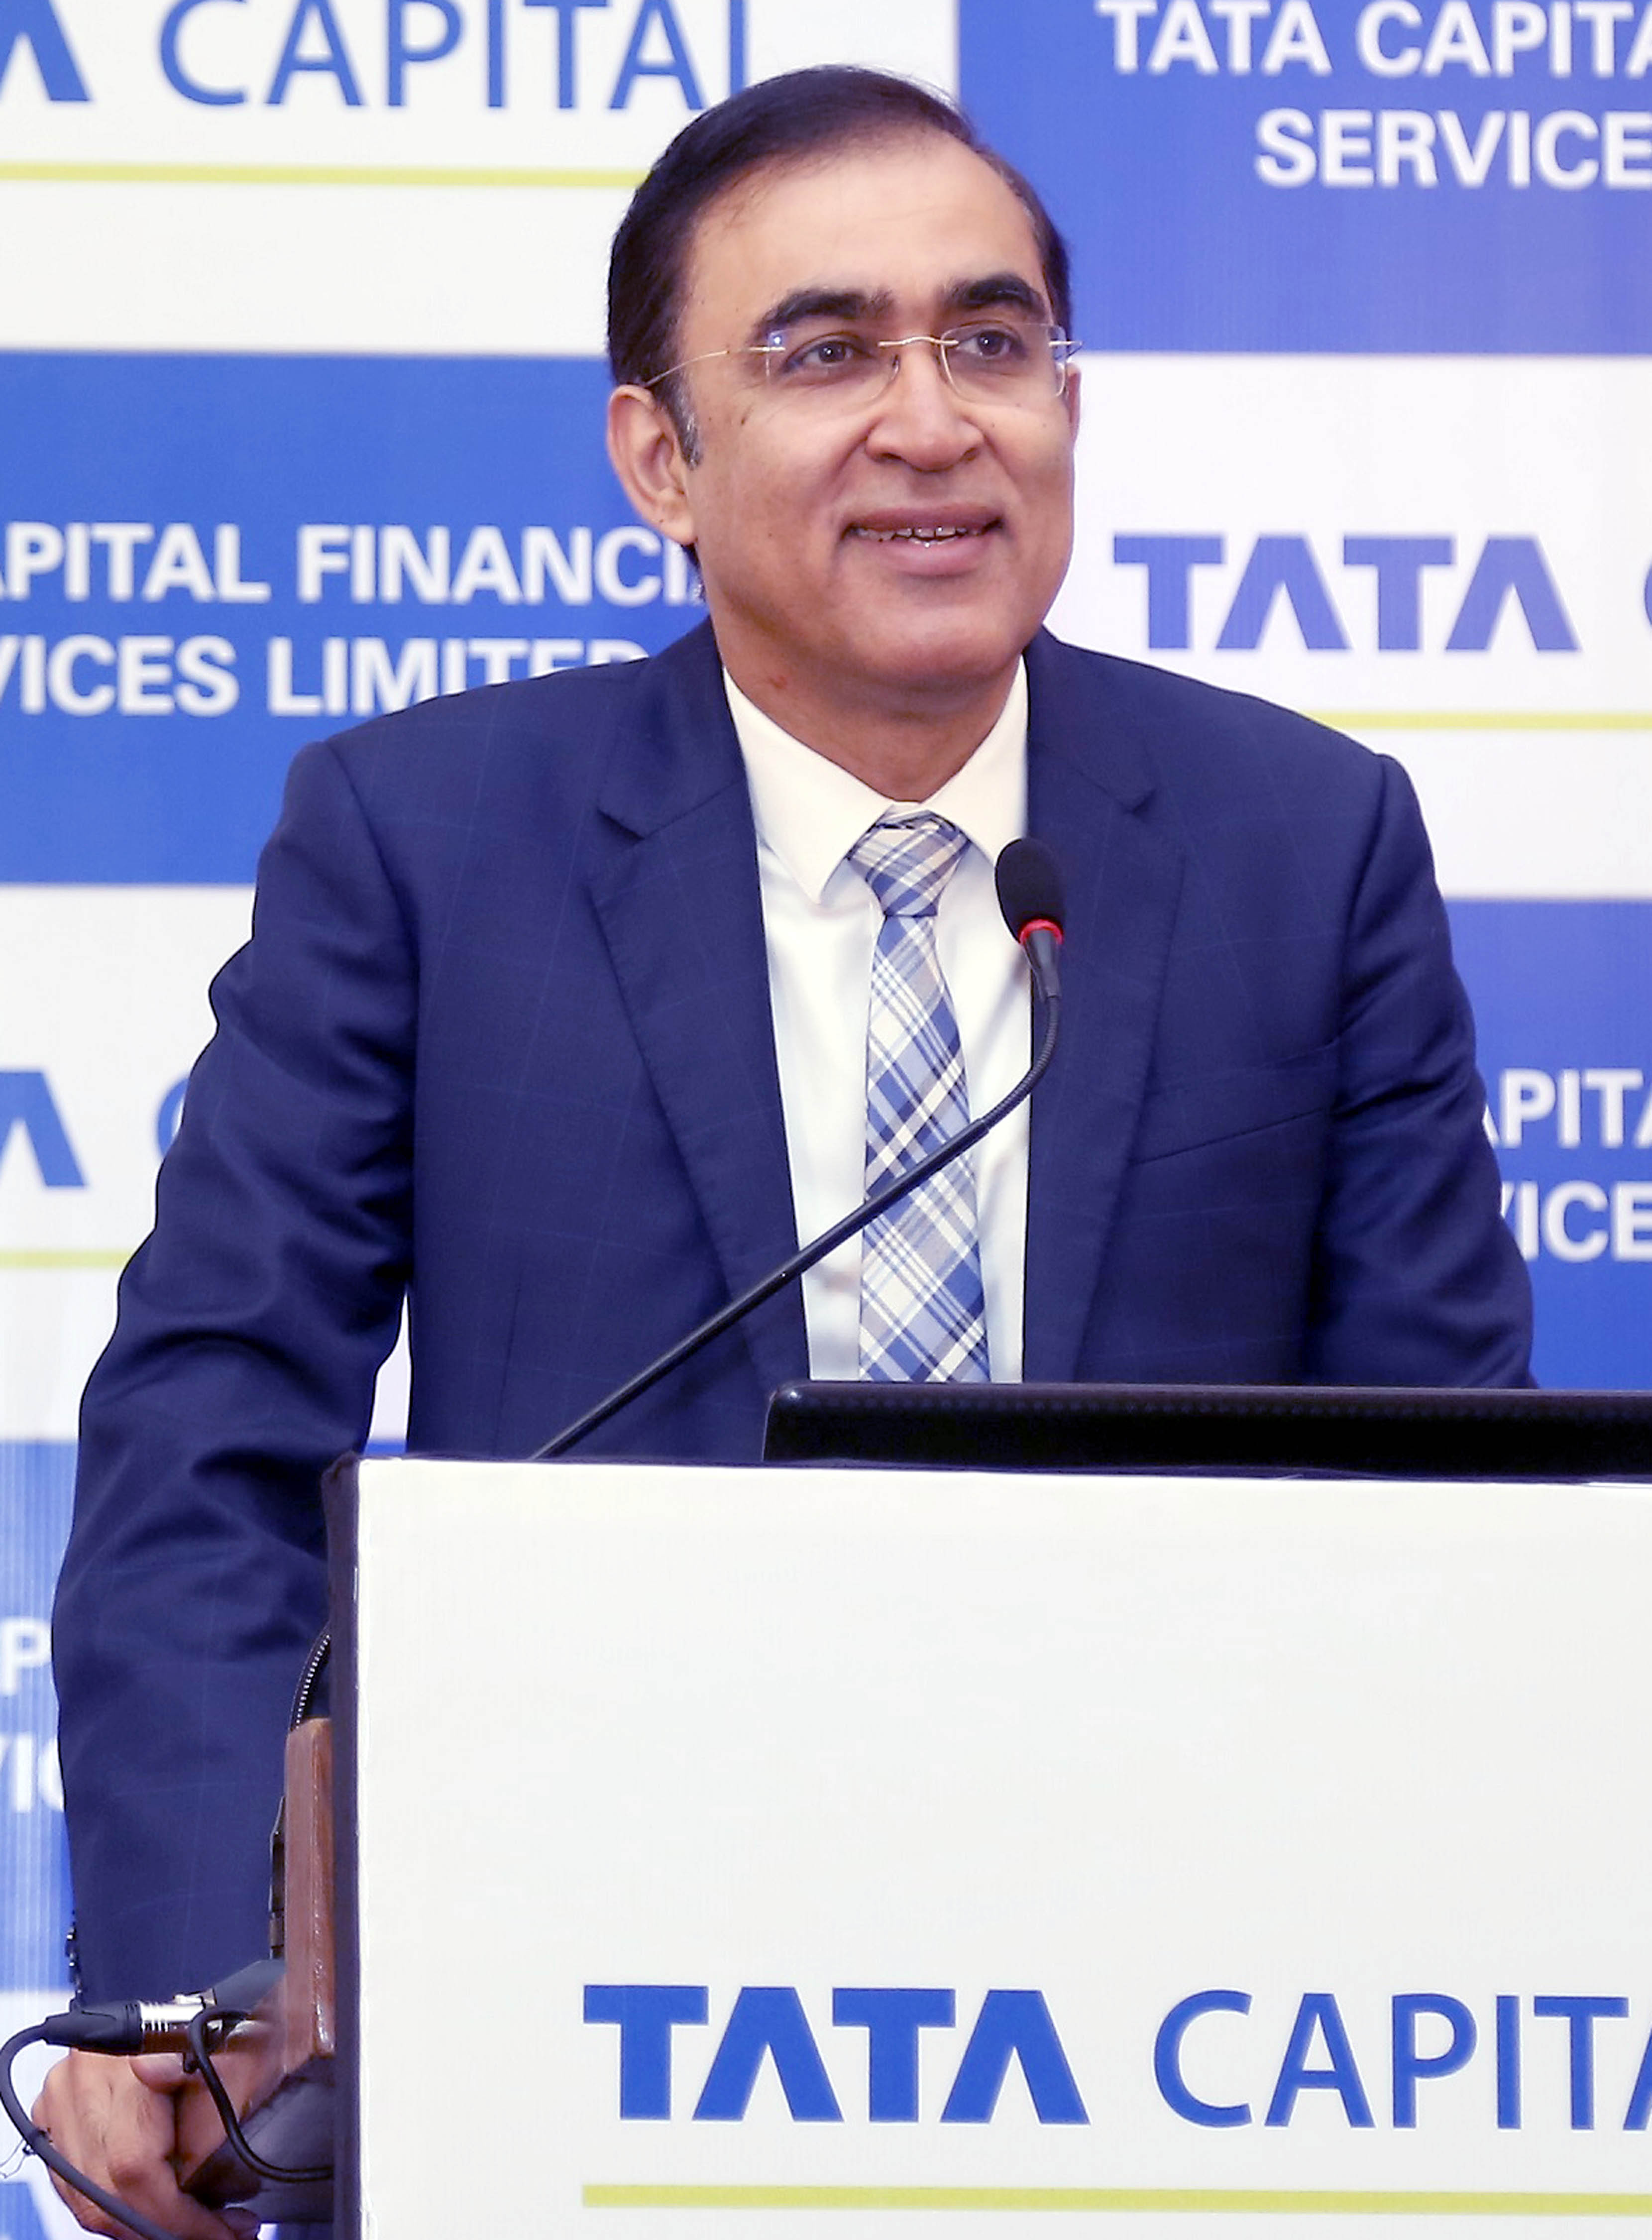 Rajiv Sabharwal (Managing Director & CEO, Tata Capital Ltd.) at the announcement of Tata Capital Financial Services Limited NCD issue.